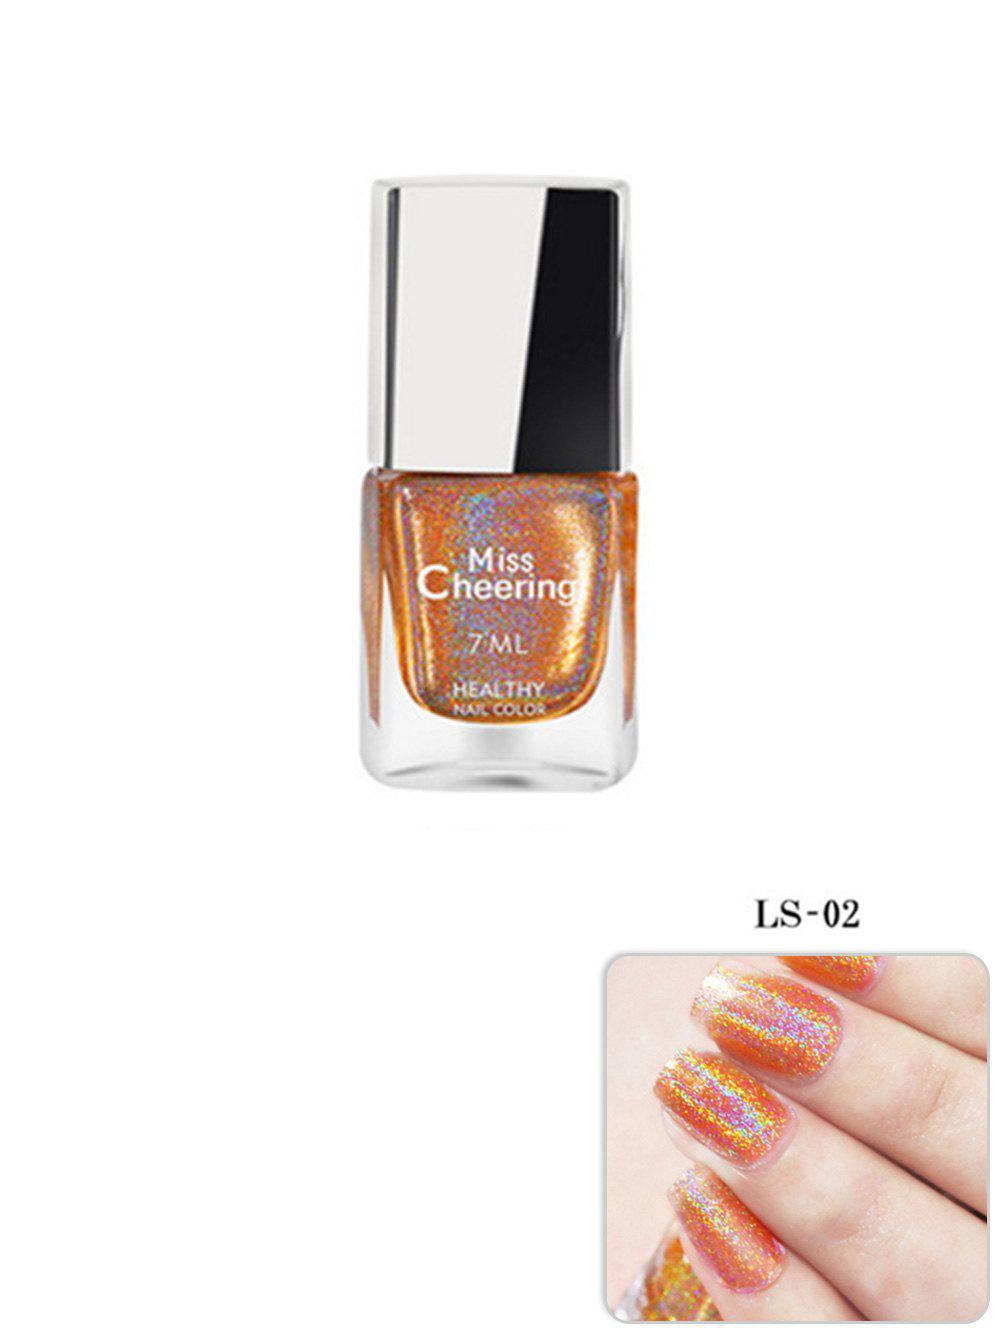 7ml UV Gel Glitter Vernis à Ongles - Verge d'Or